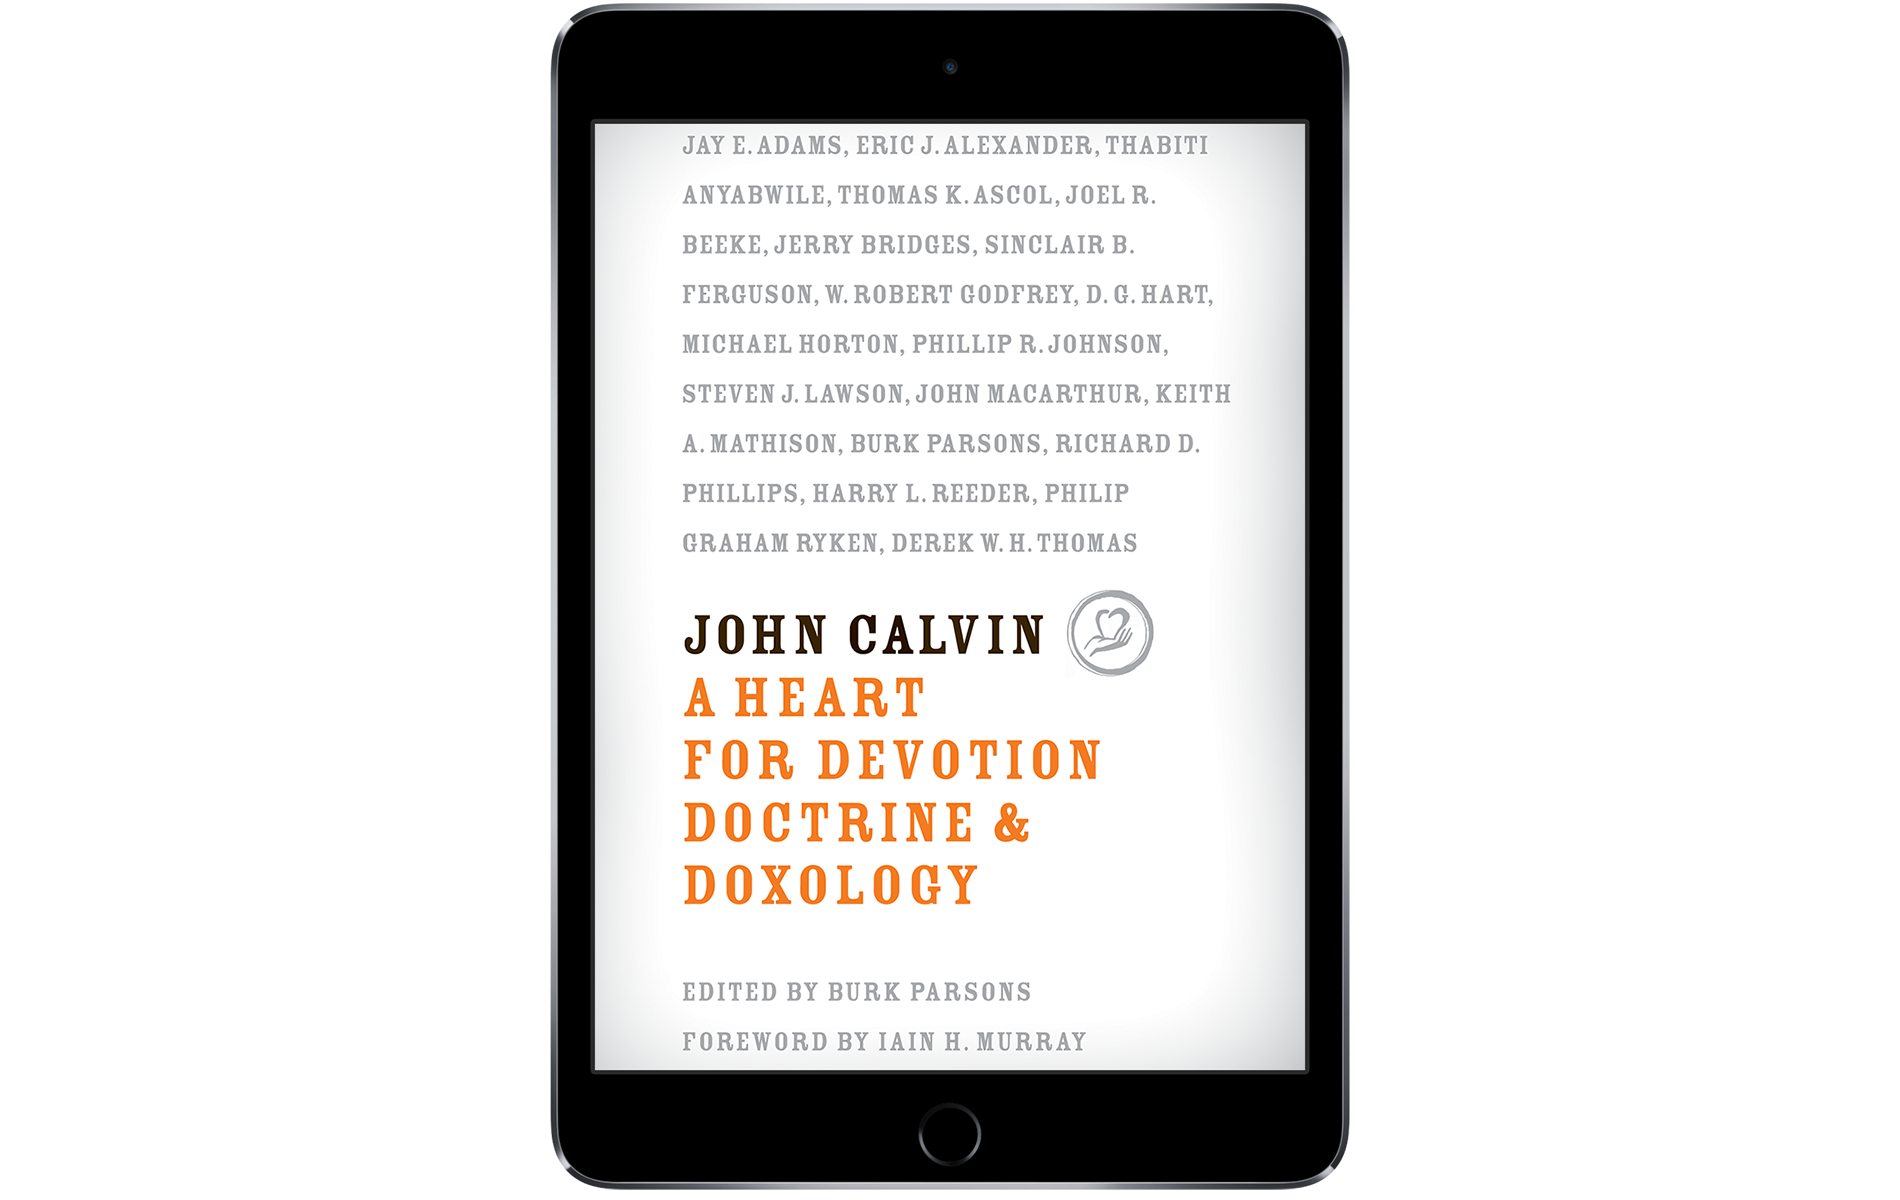 John Calvin: A Heart for Devotion, Doctrine, & Doxology